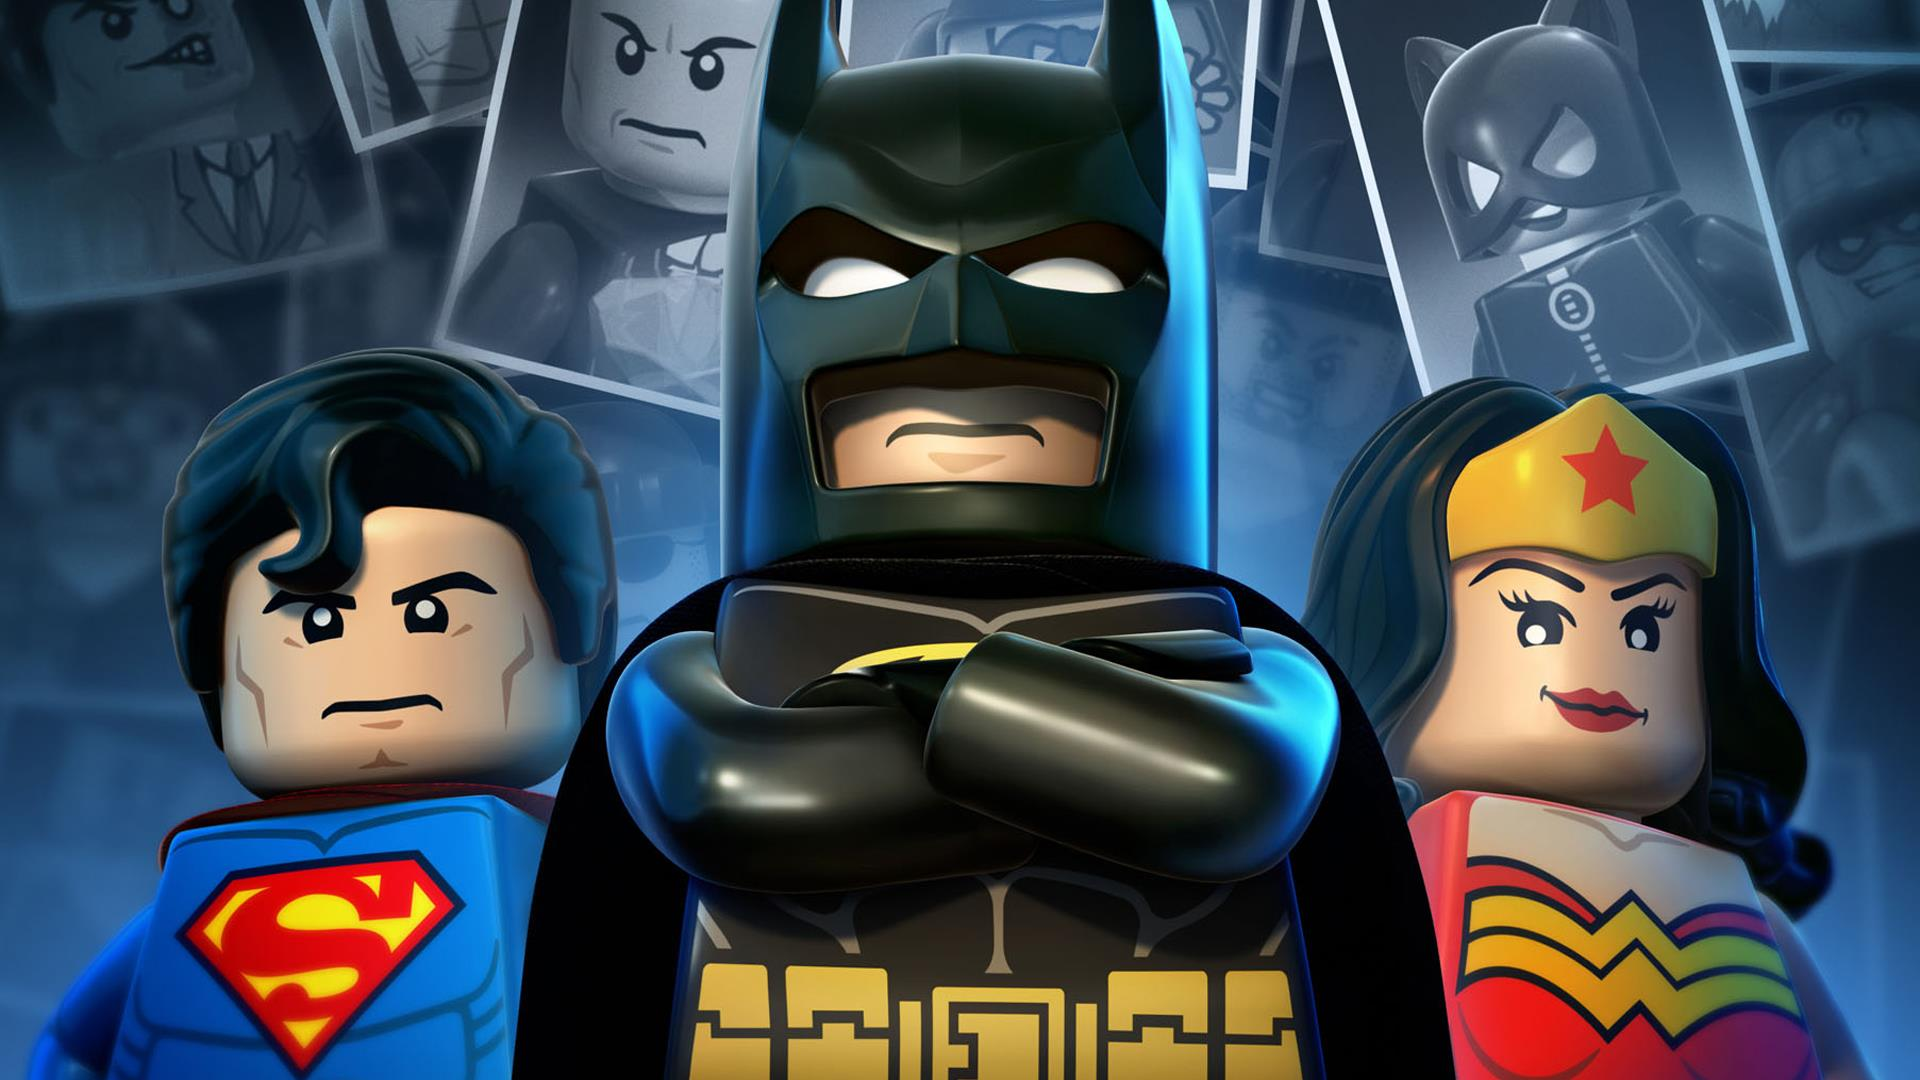 Superheroes Lego Wallpaper